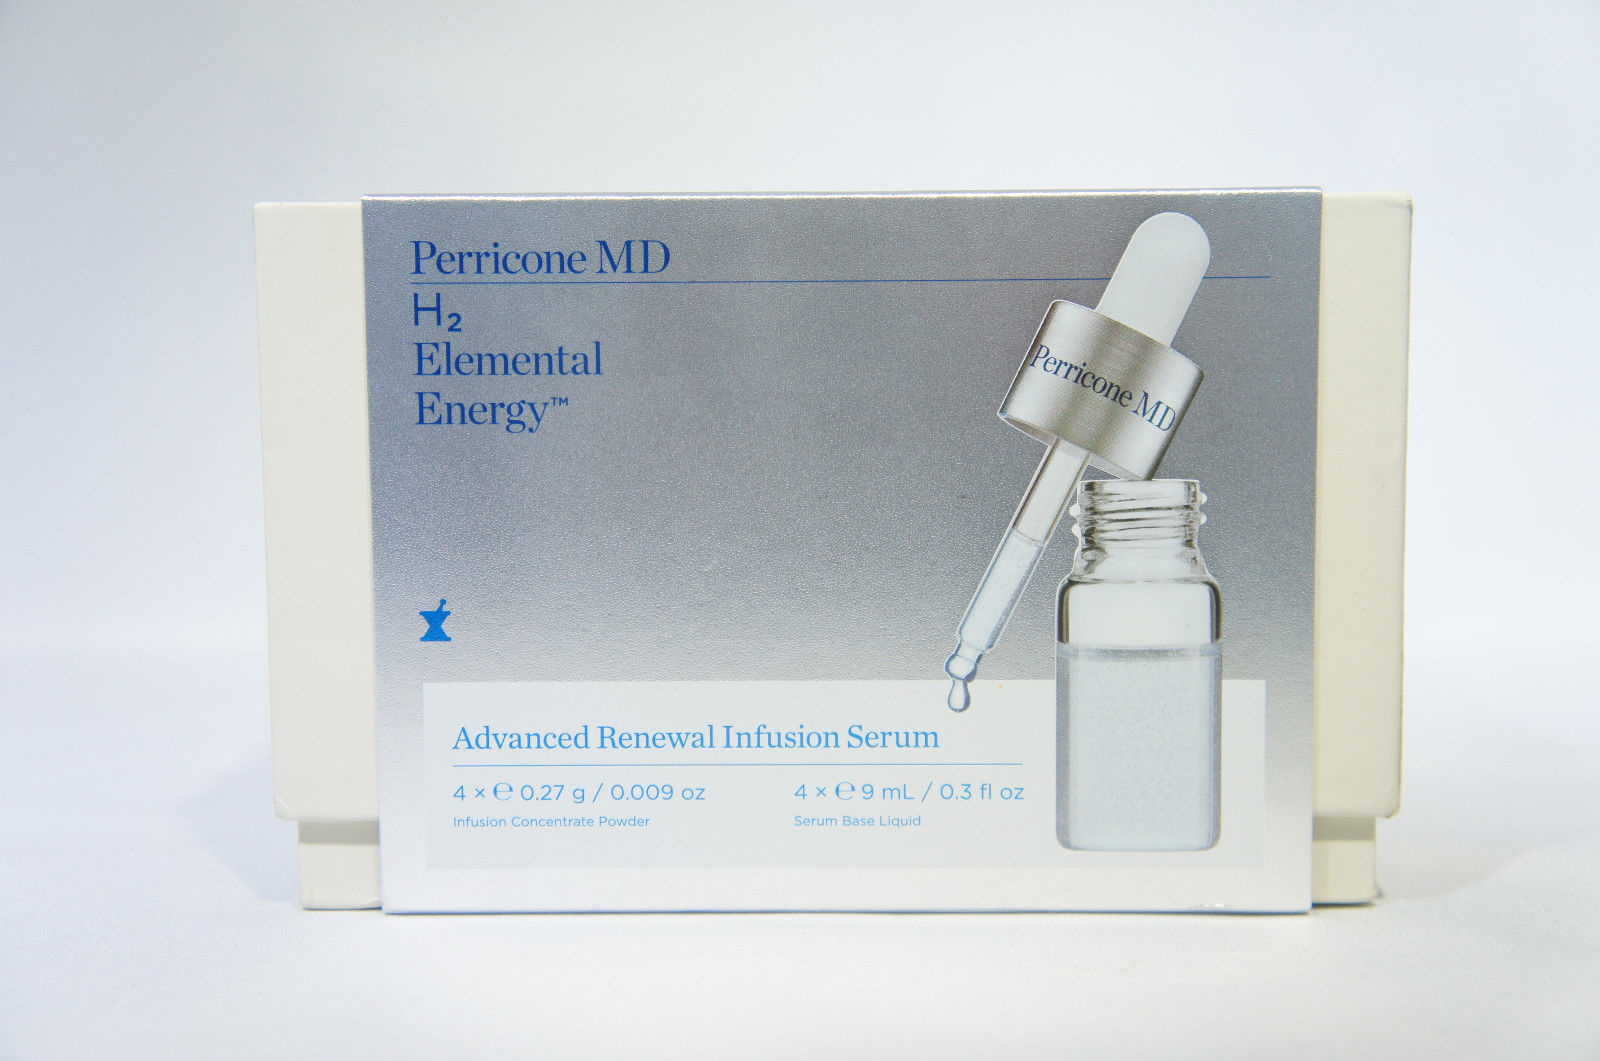 PERRICONE MD H2 Elemental Energy Advanced Renewal Infusion Serum 4 x 9 ml